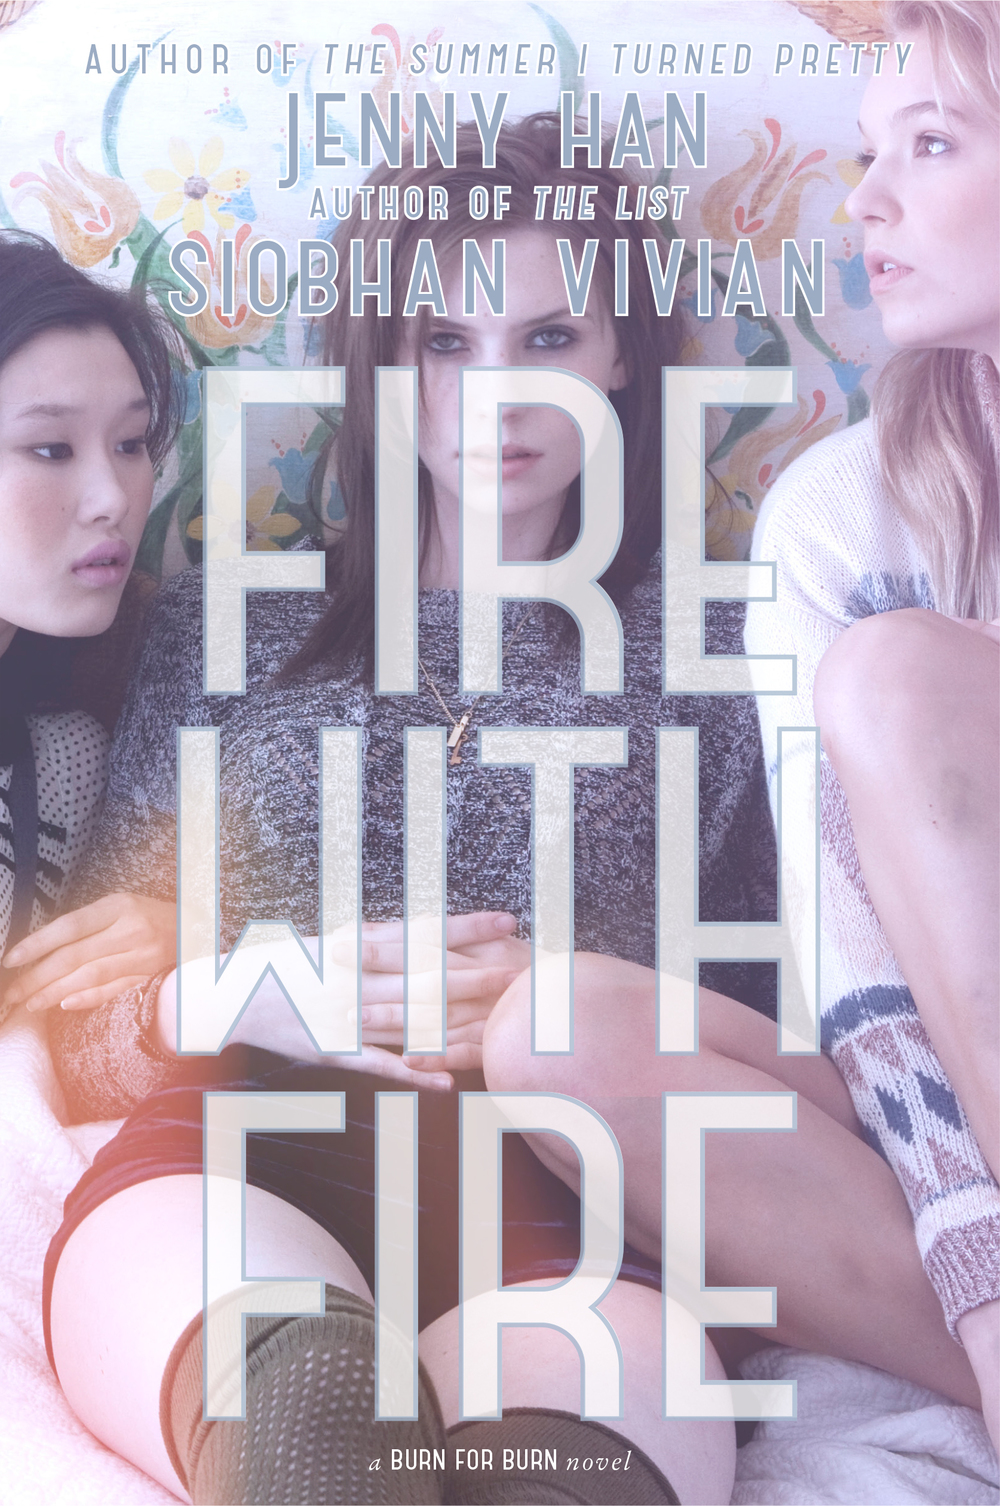 Fire with Fire by Jenny Han & Siobhan Vivian Amazon | Goodreads